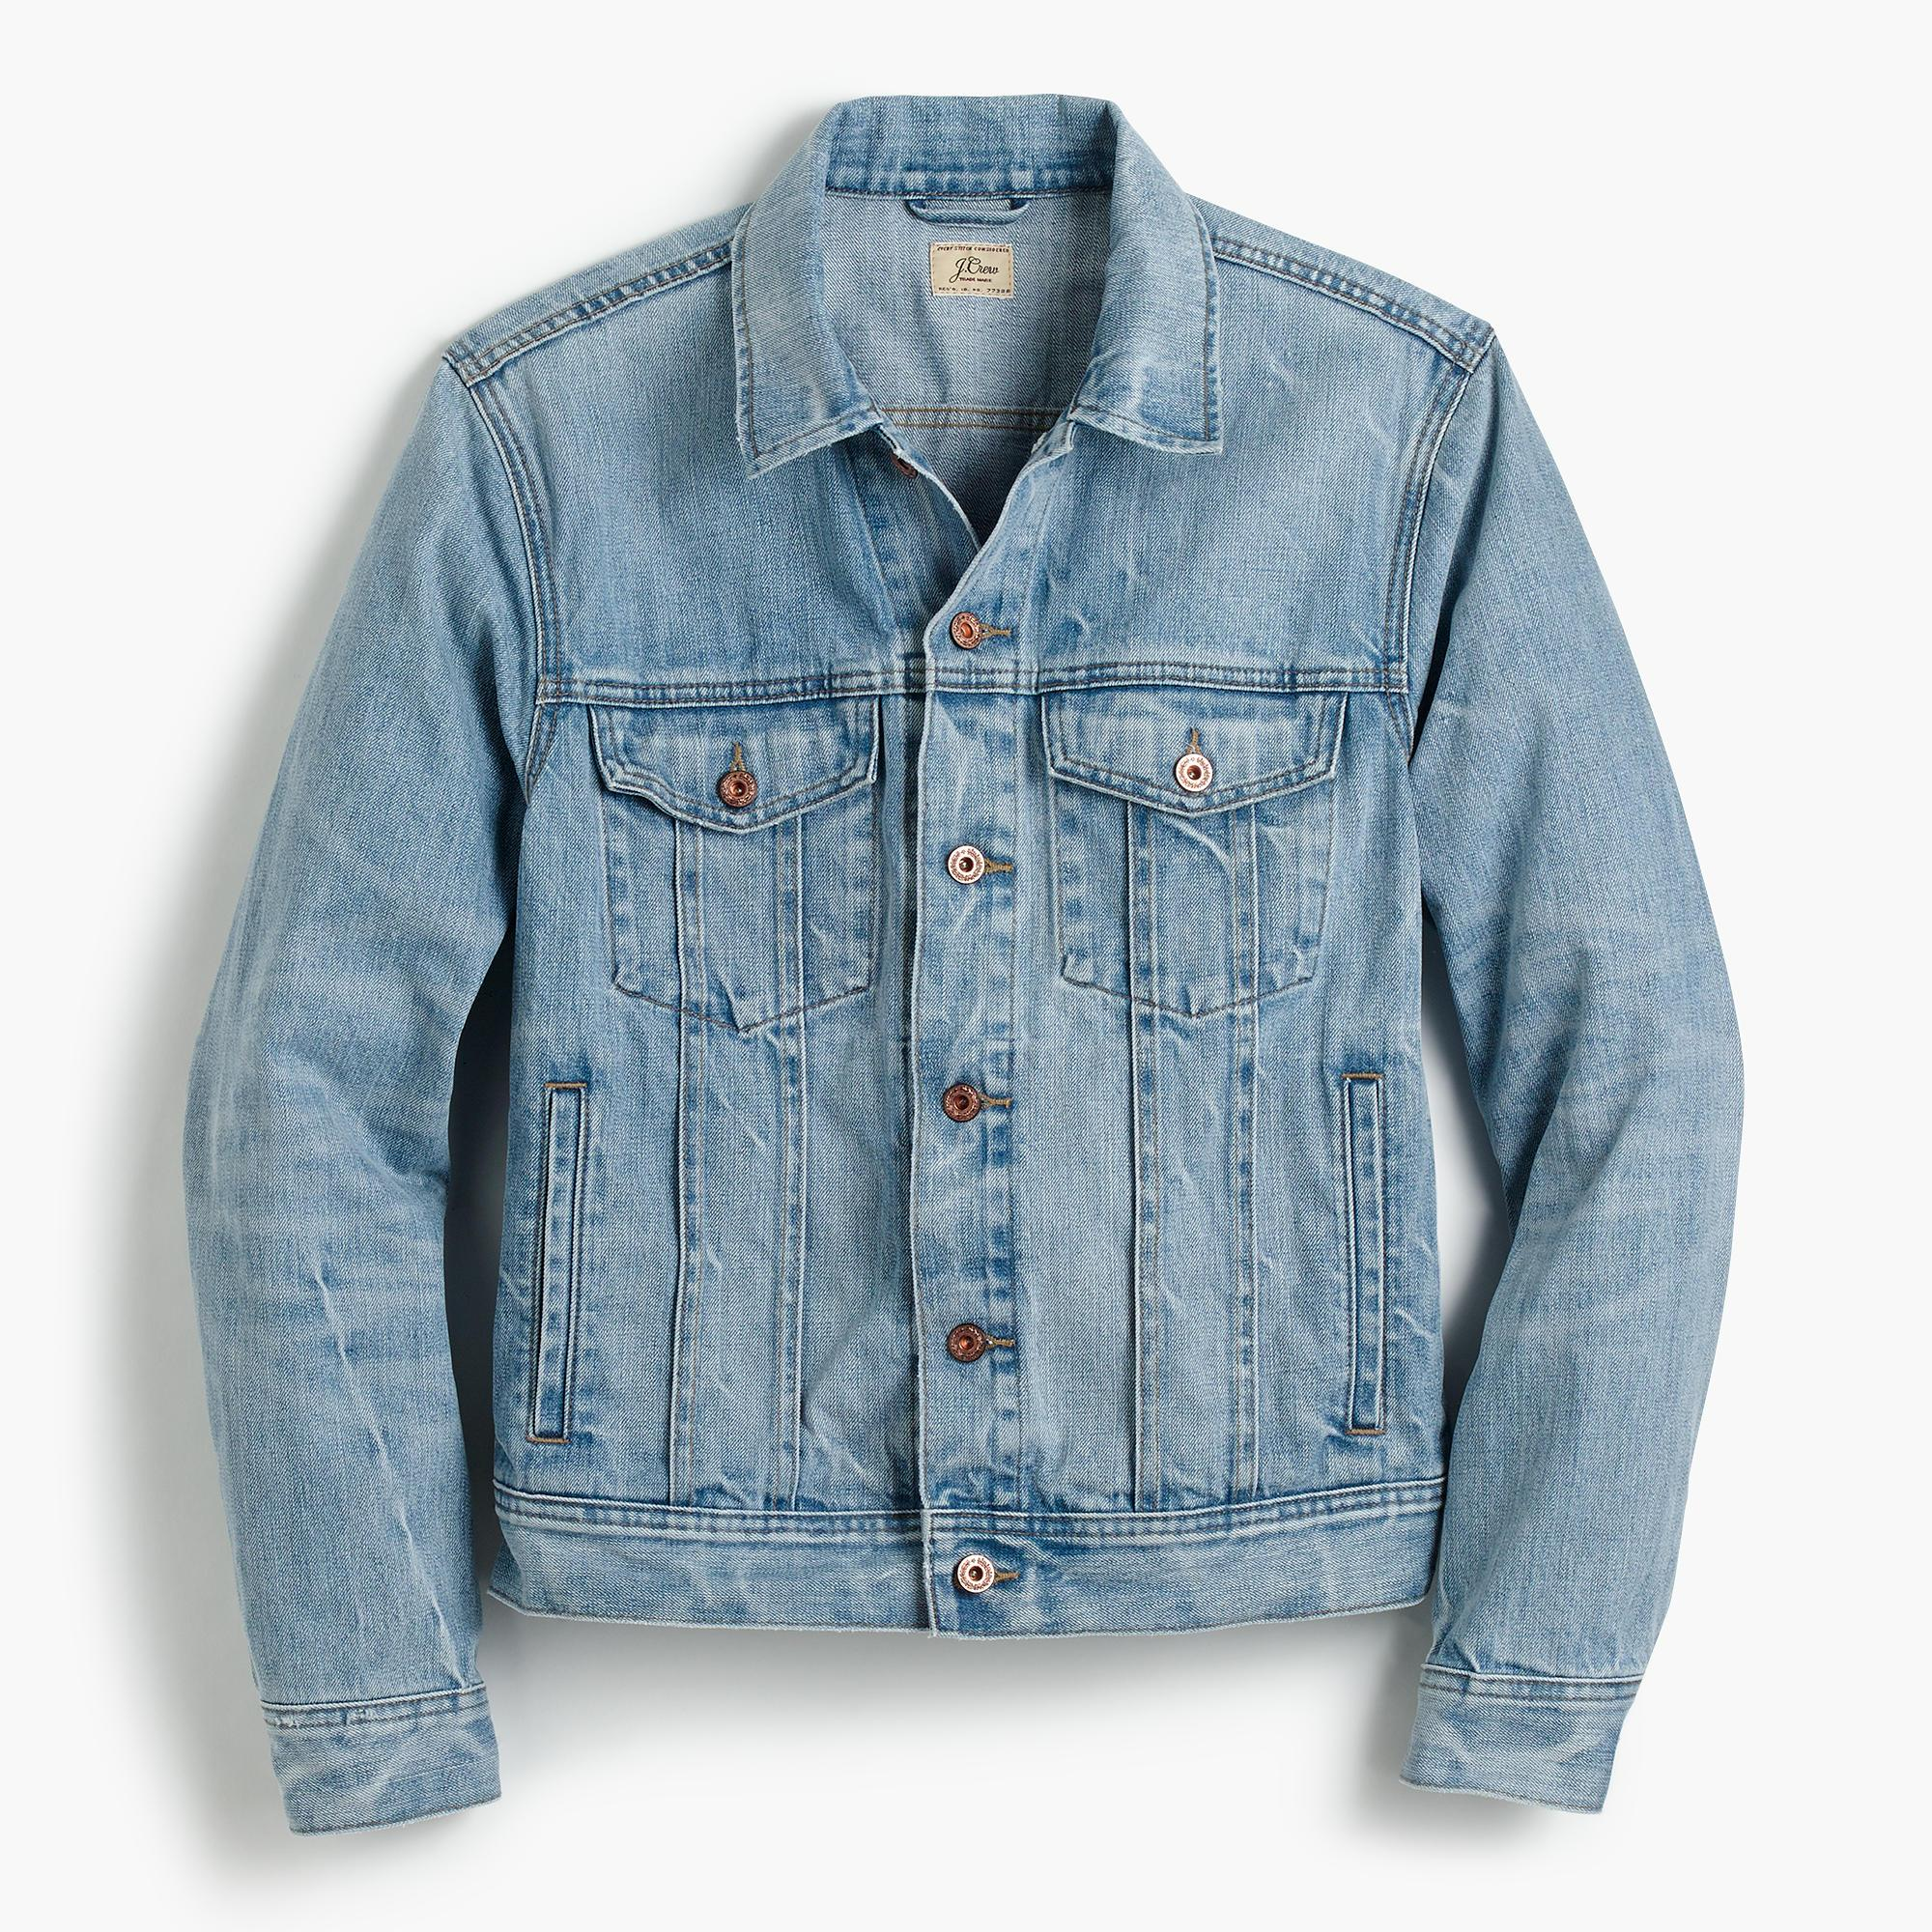 Jcrew Denim Jacket In Light Wash In Blue For Men  Lyst-5949